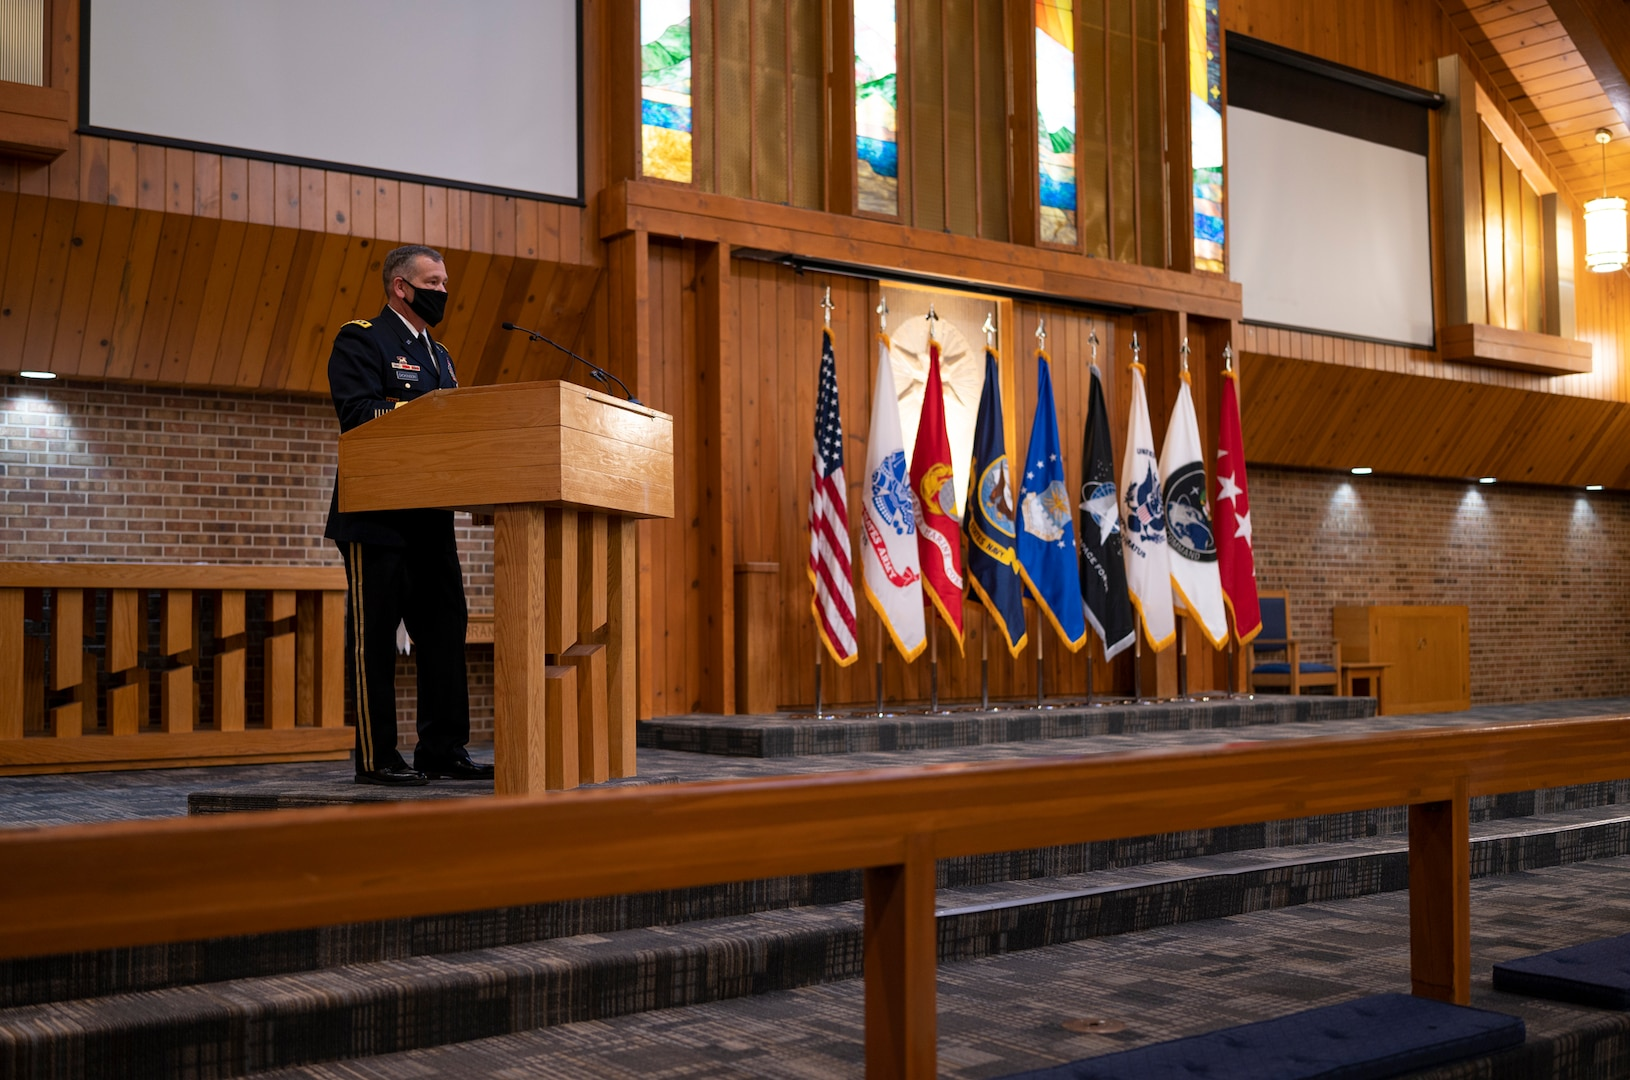 U.S. Army Gen. James Dickinson, United States Space Command commander, talks about service and sacrifice during a Gold Star flag dedication ceremony Jan. 25, 20201, at the Peterson-Schriever Garrison Chapel at Peterson Air Force Base, Colorado. The ceremony marked the beginning of a relationship between Fort Carson's Survivor Outreach Services Program and other organizations that support Gold Star families and members of USSPACECOM. (USSPACECOM photo by U.S. Air Force Staff Sgt. Dennis Hoffman)